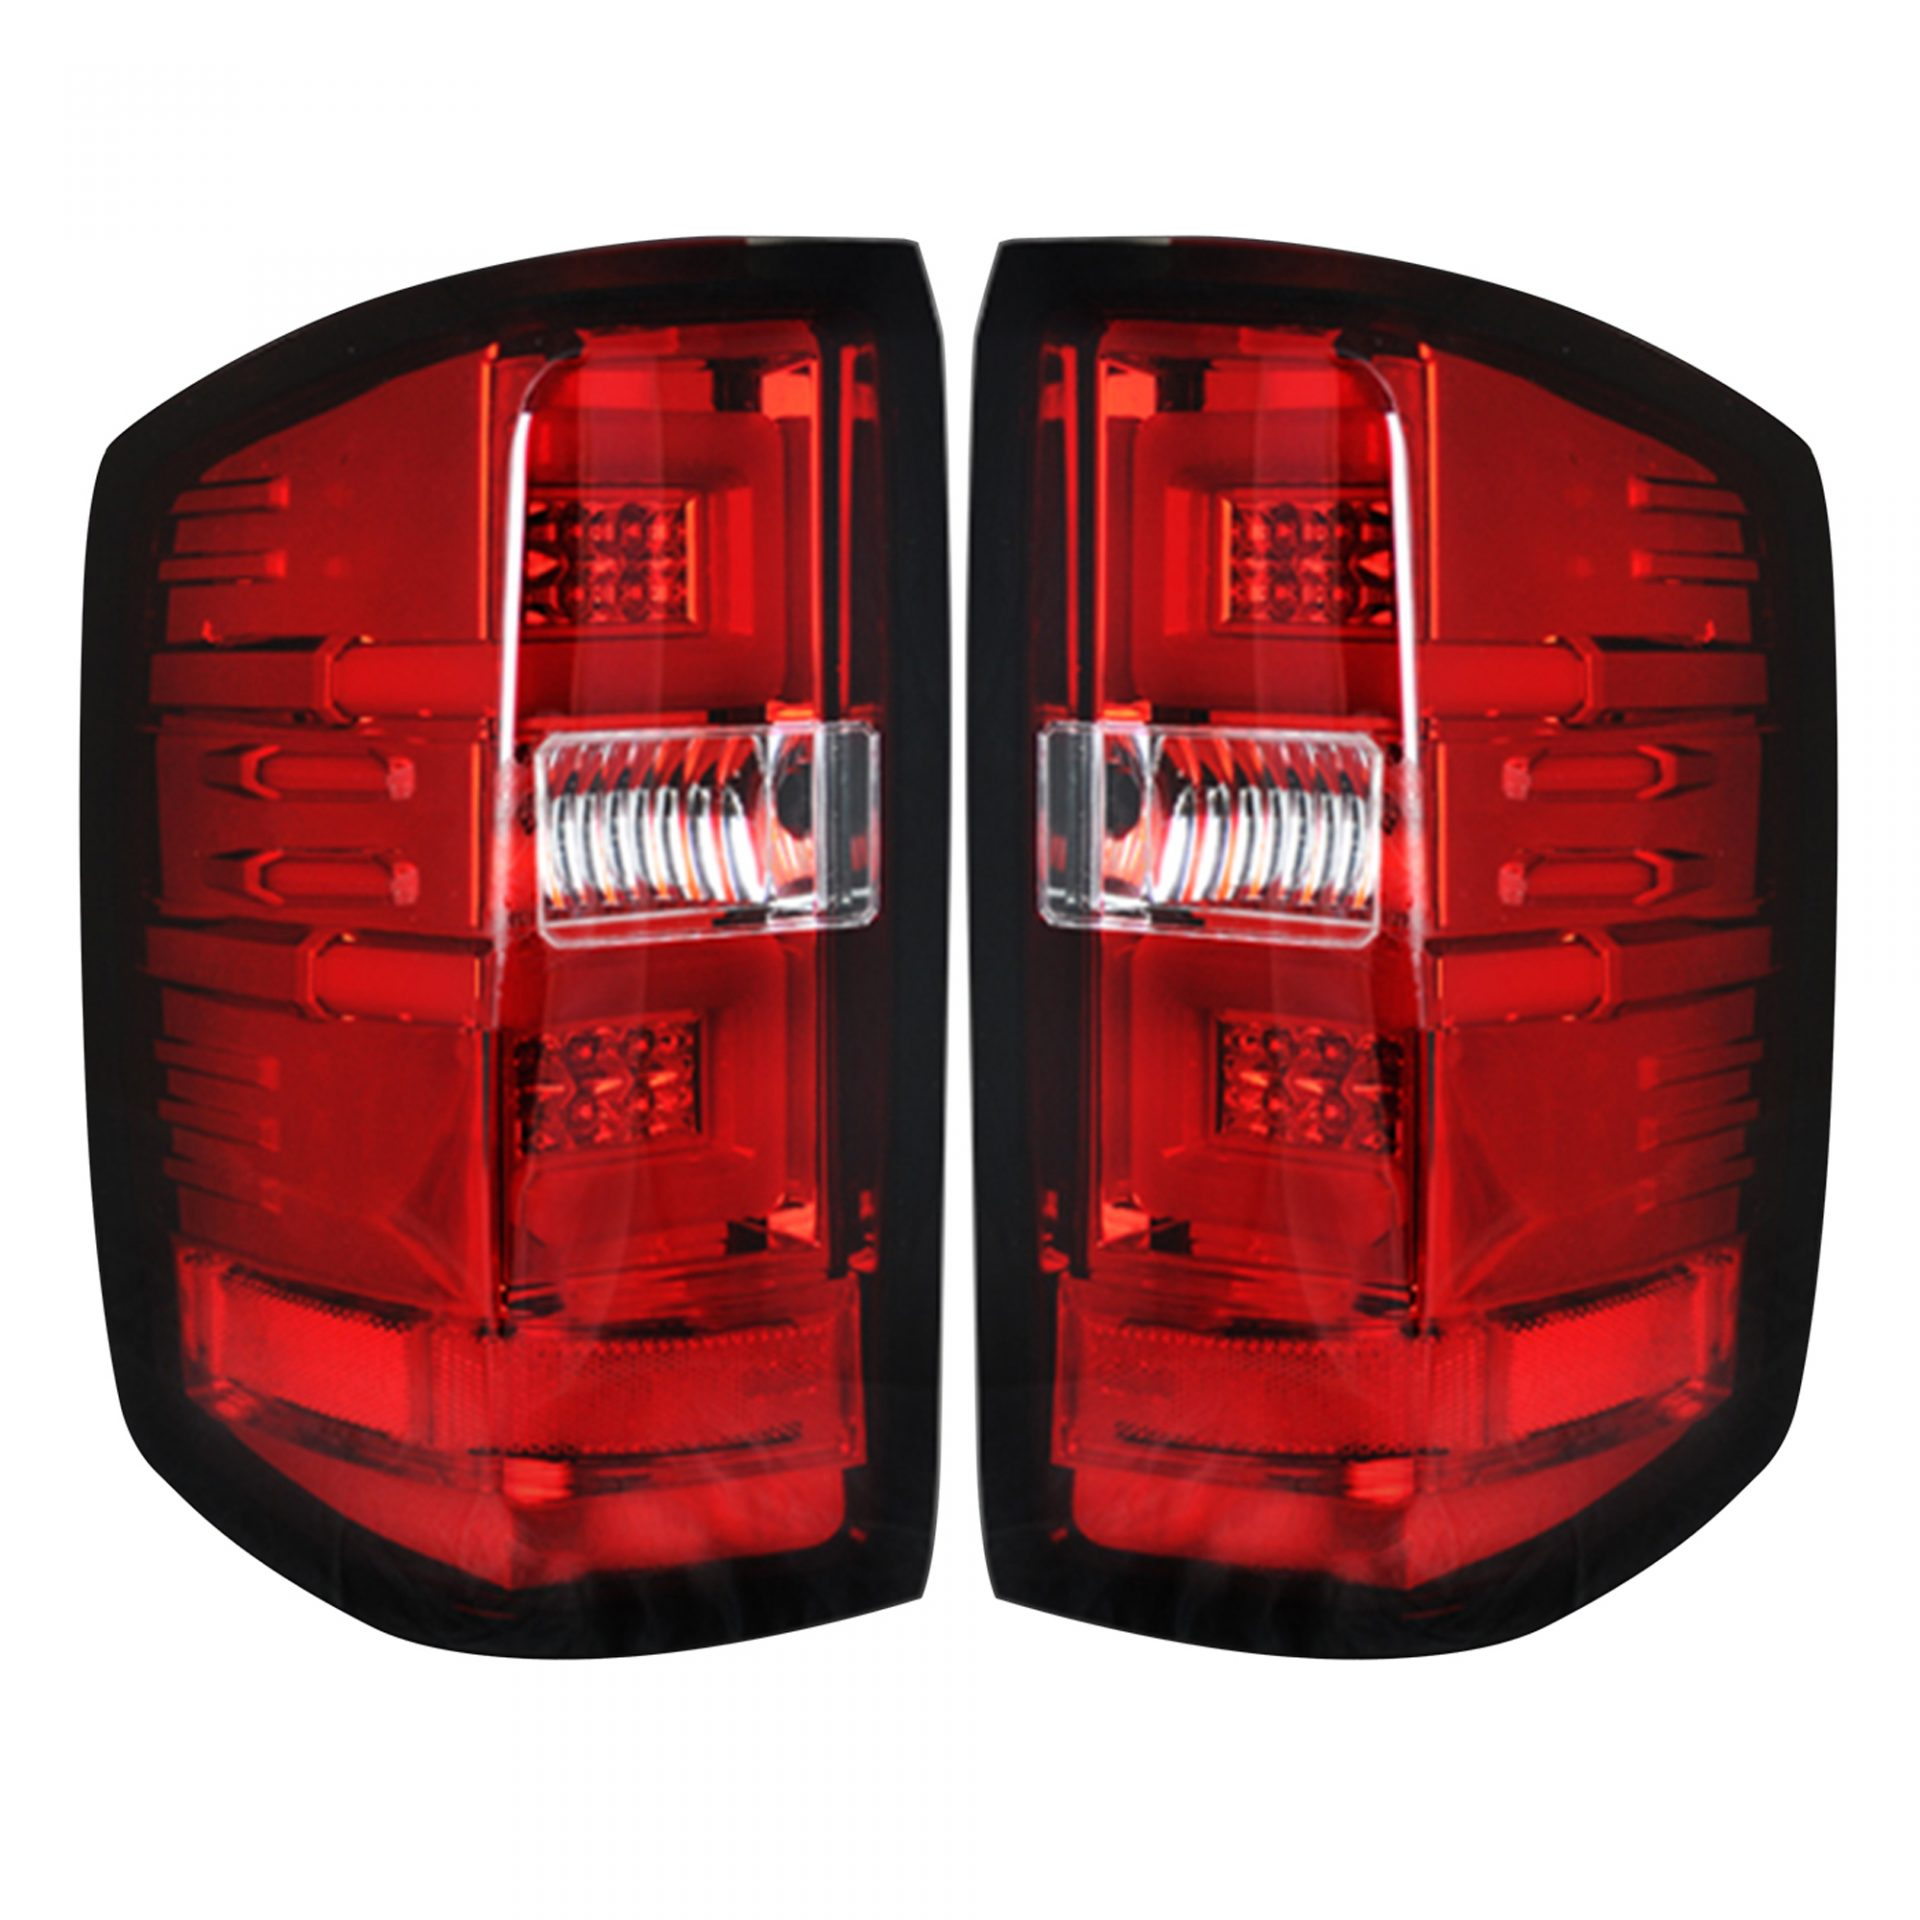 Recon 264238rd Chevy Silverado 14 18 1500 2500 3500 Replaces Factory Oem Halogen Tail Lights Only Also Fits Gmc Sierra 15 Dually Body Style With